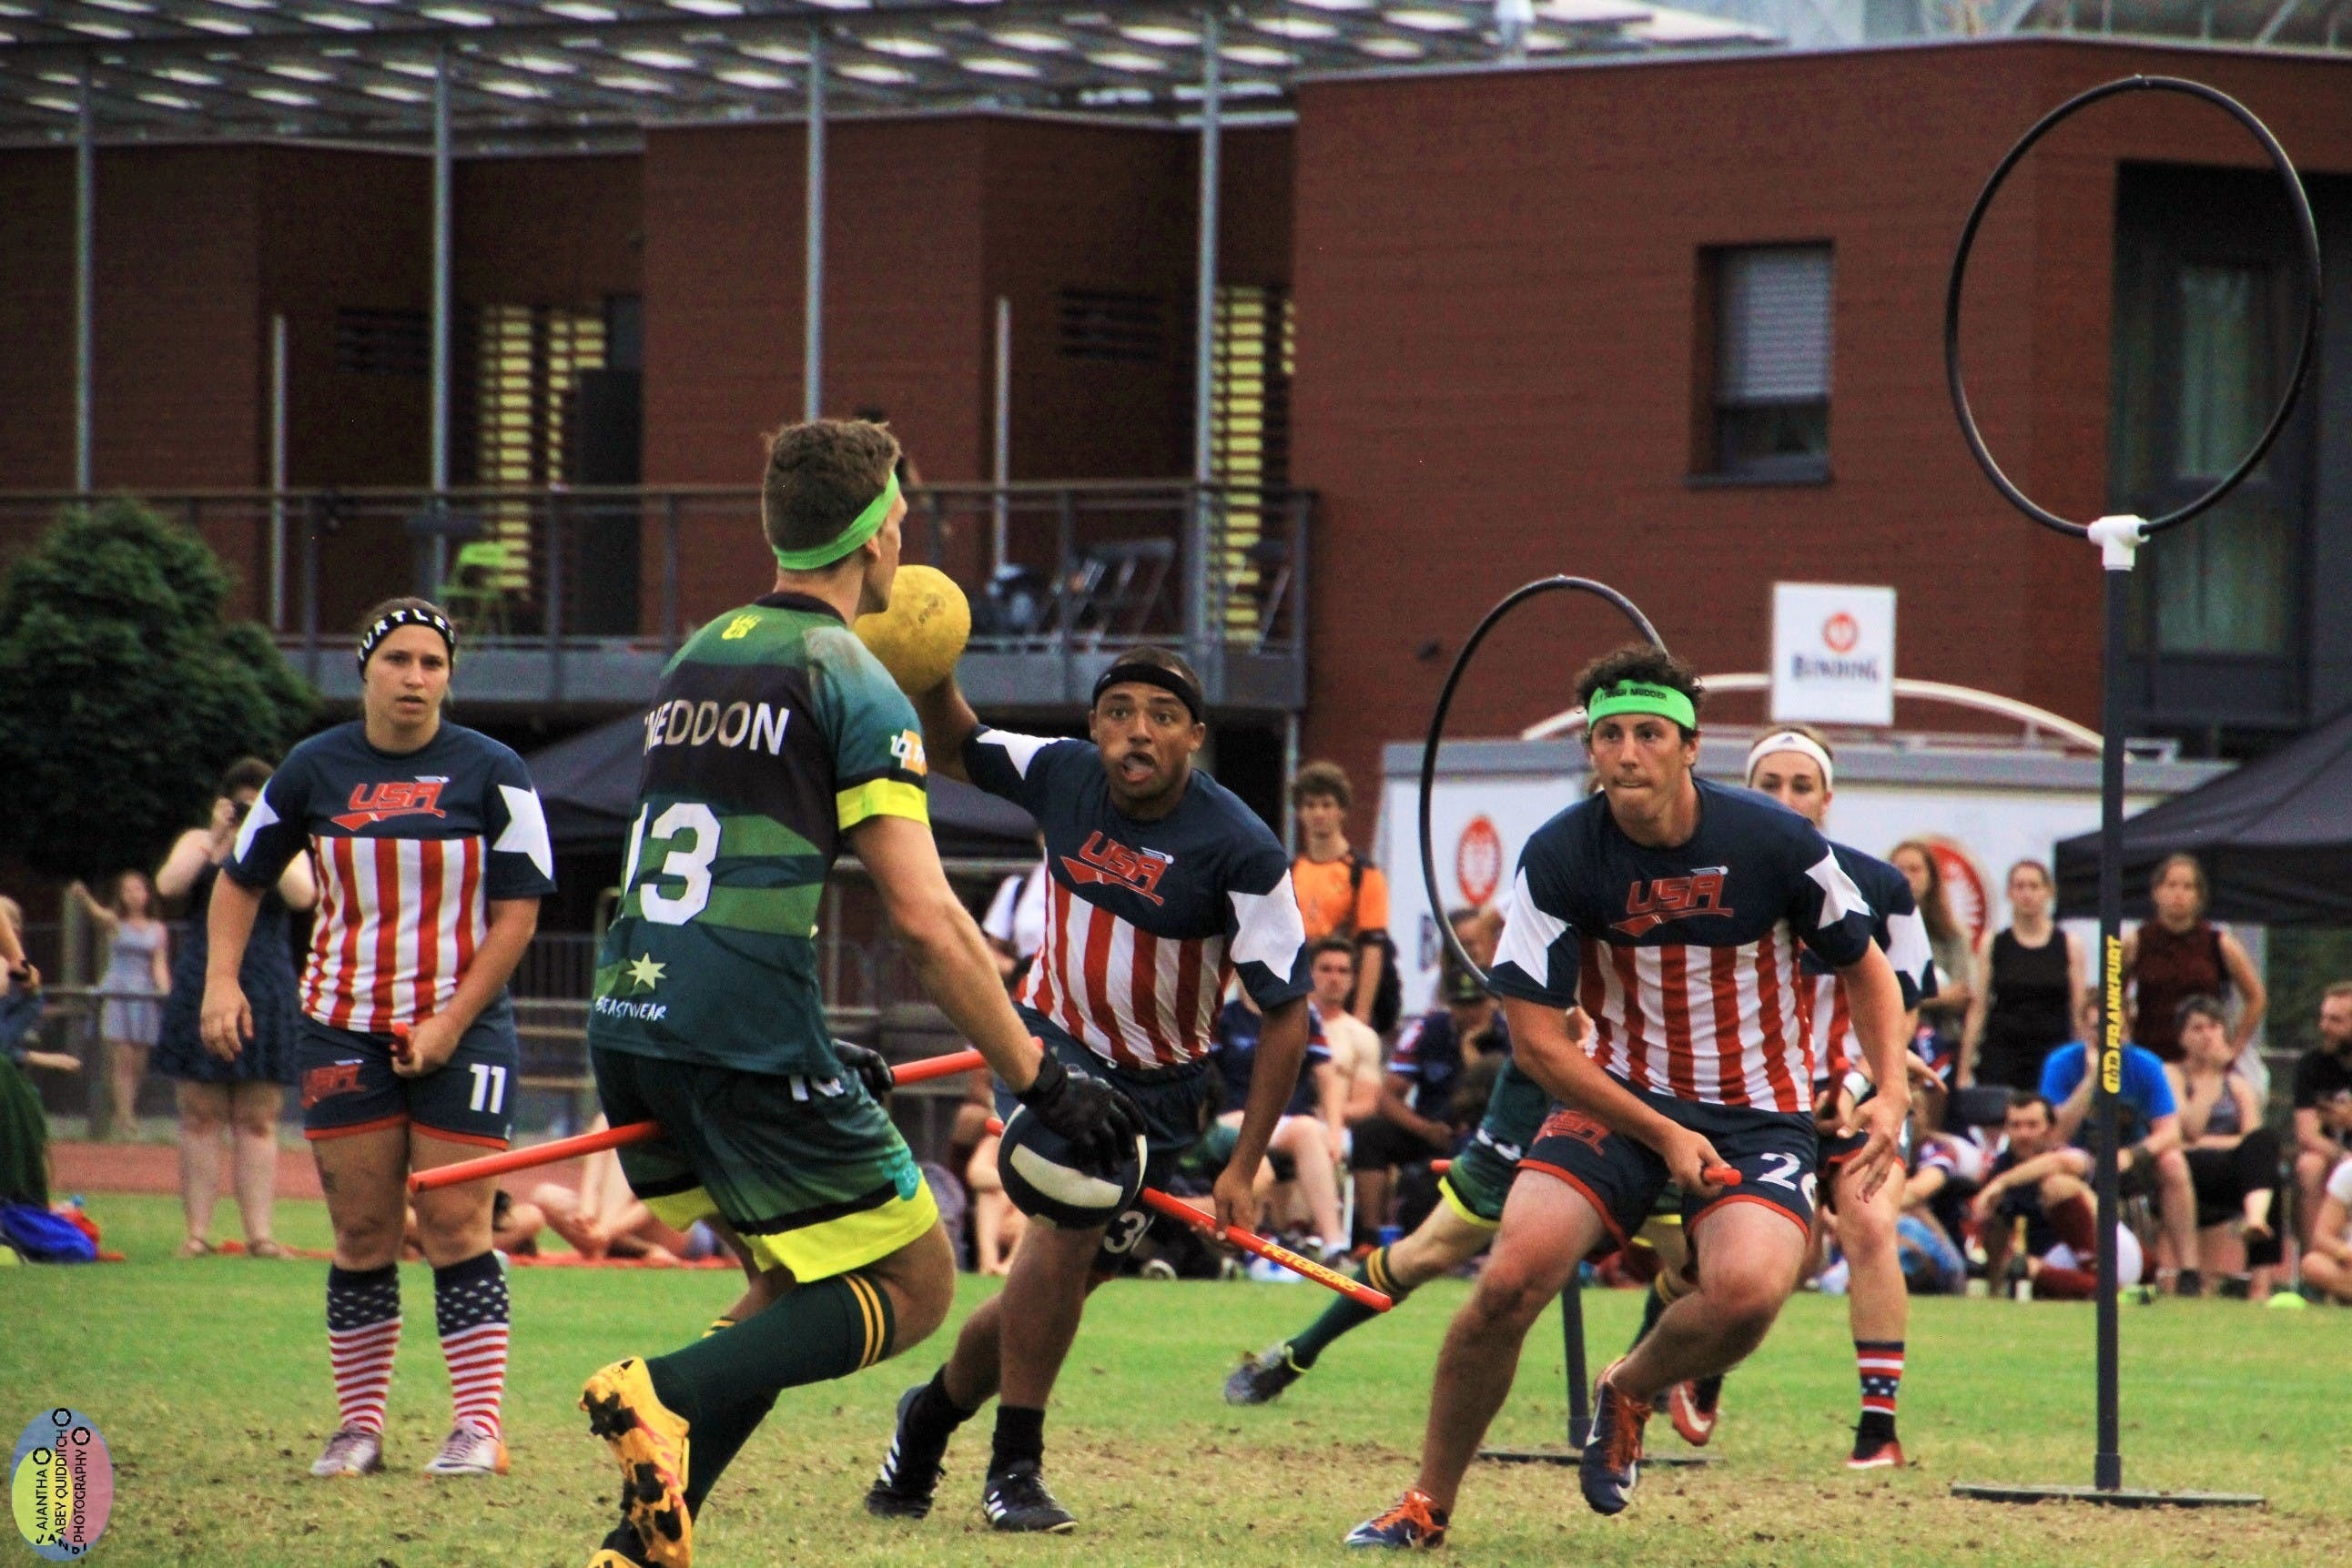 Meet the Wizards who play Quidditch